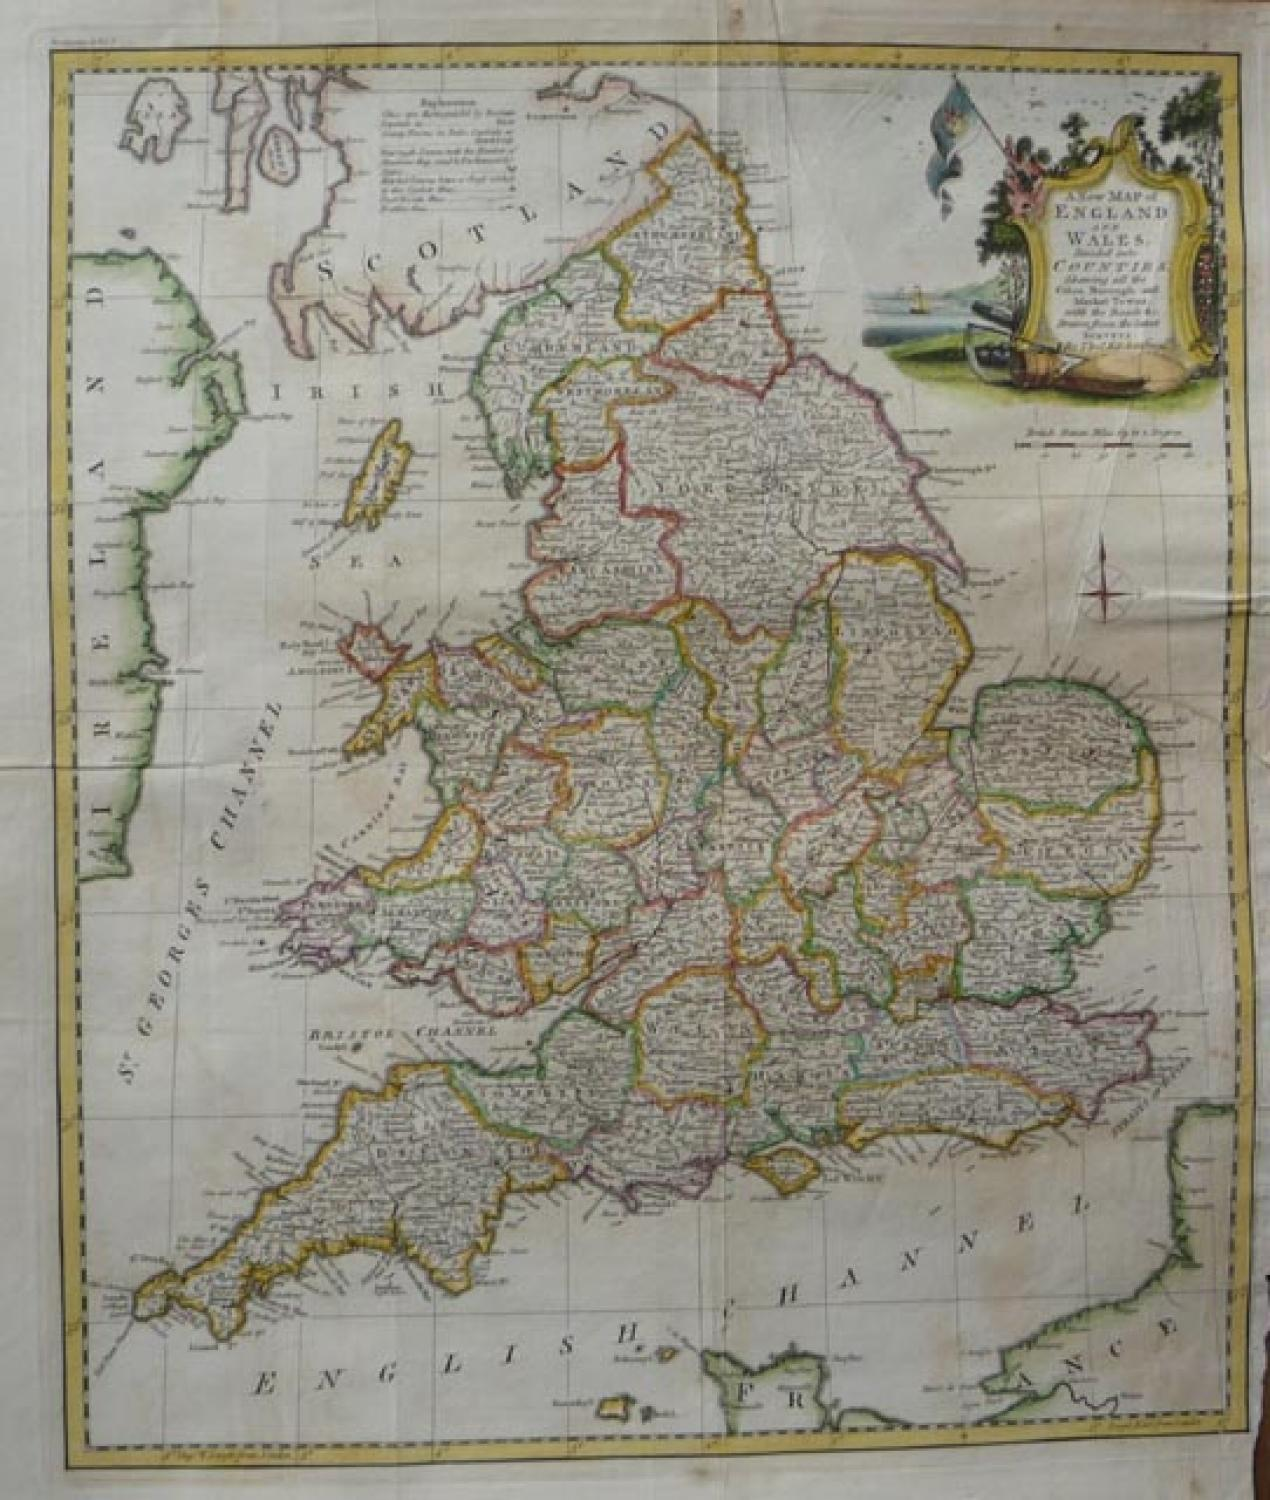 SOLD A New Map of England and Wales, divided into Counties: shewing all the Cities, Borough and Market Towns, with the